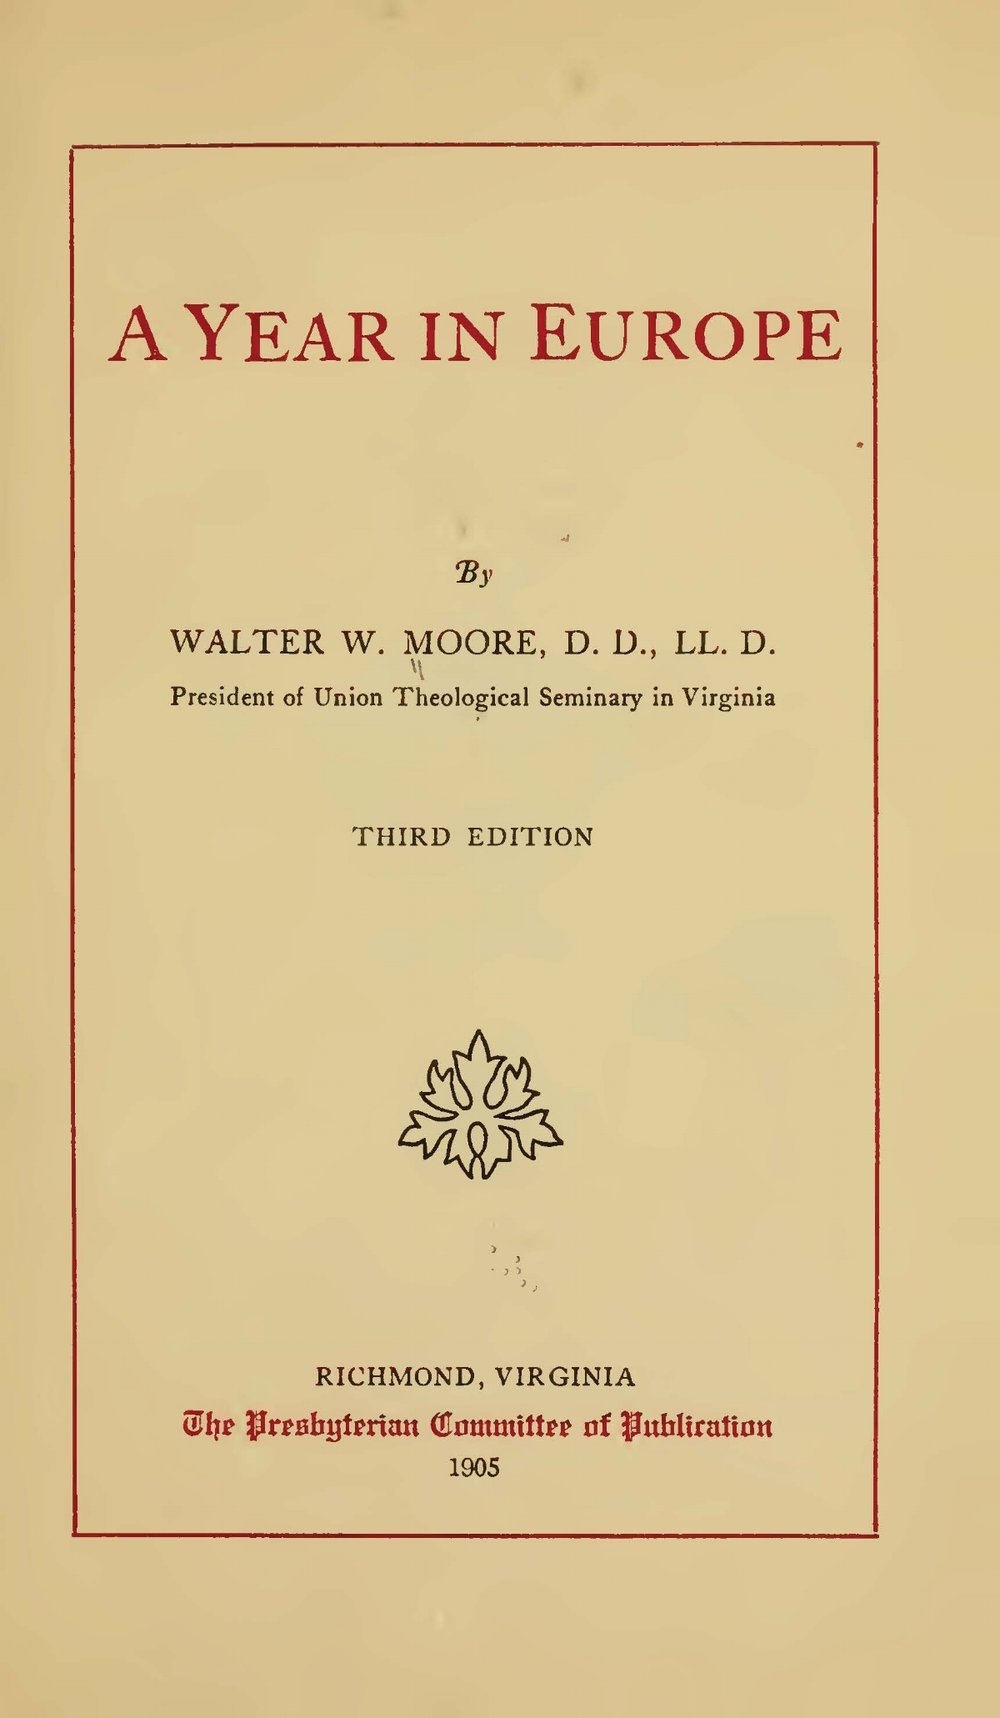 Moore, Walter William, A Year in Europe Title Page.jpg